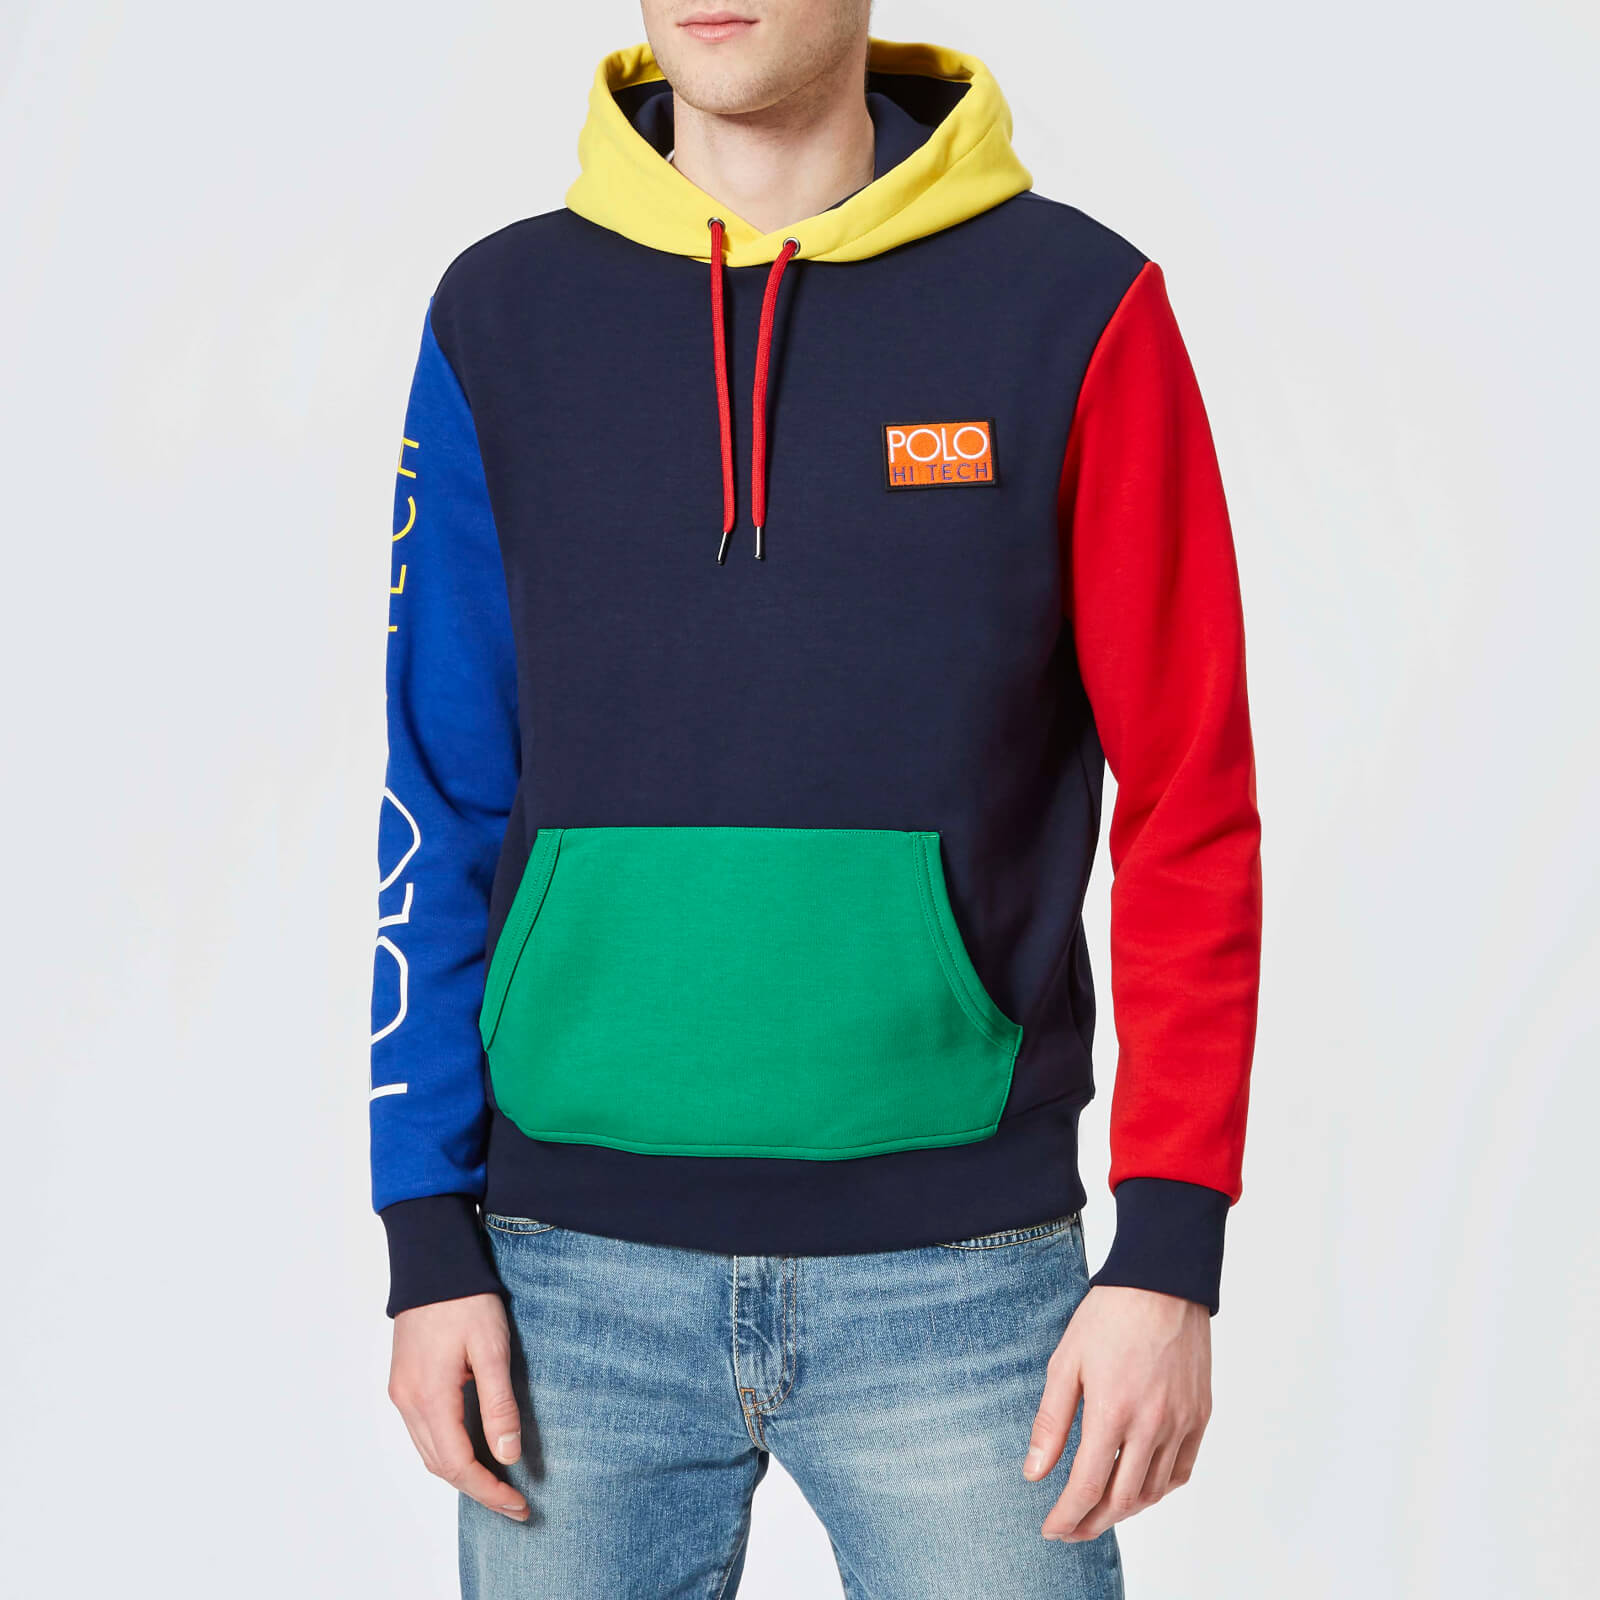 0dc5ff1a460e Polo Ralph Lauren Men s Overhead Hoody - Cruise Navy Multi - Free UK  Delivery over £50